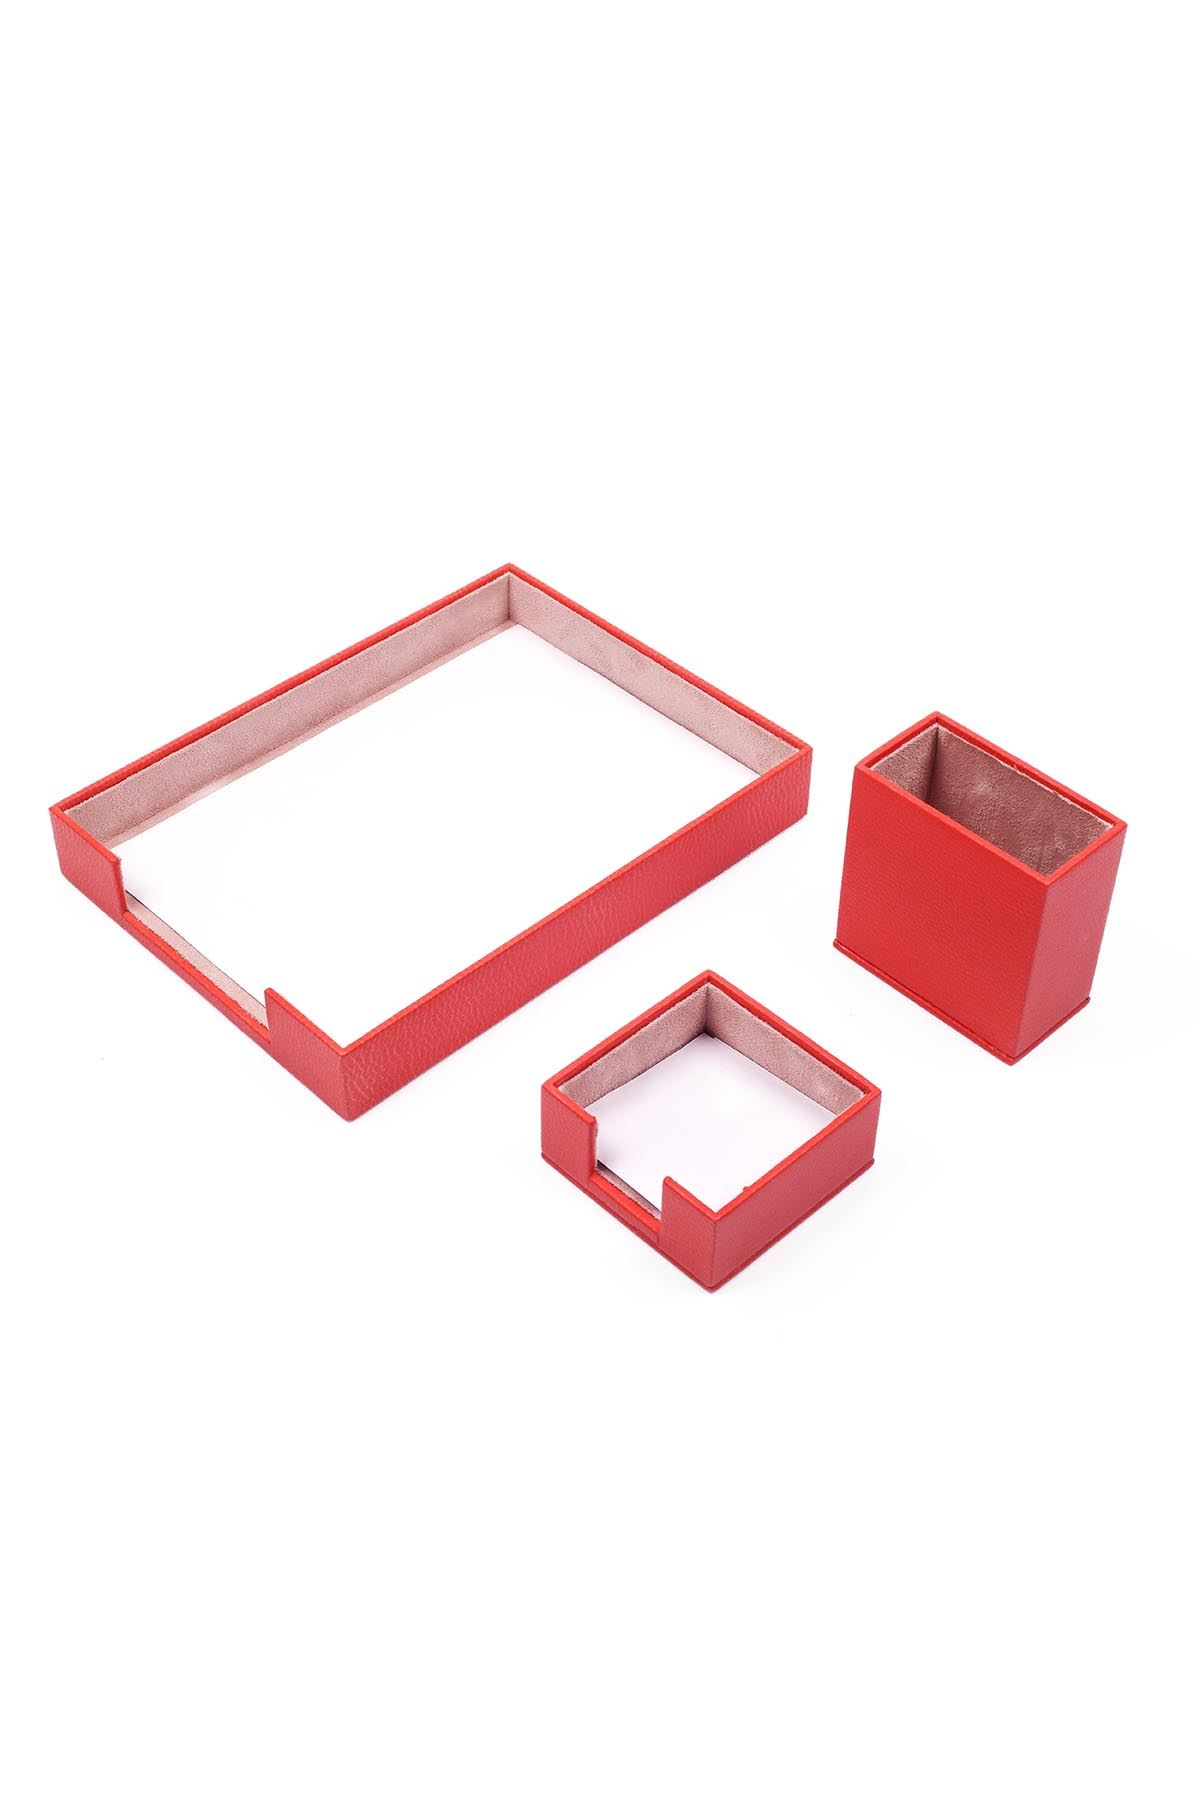 Document Tray With 2 Accessories Red| Desk Set Accessories | Desktop Accessories | Desk Accessories | Desk Organizers